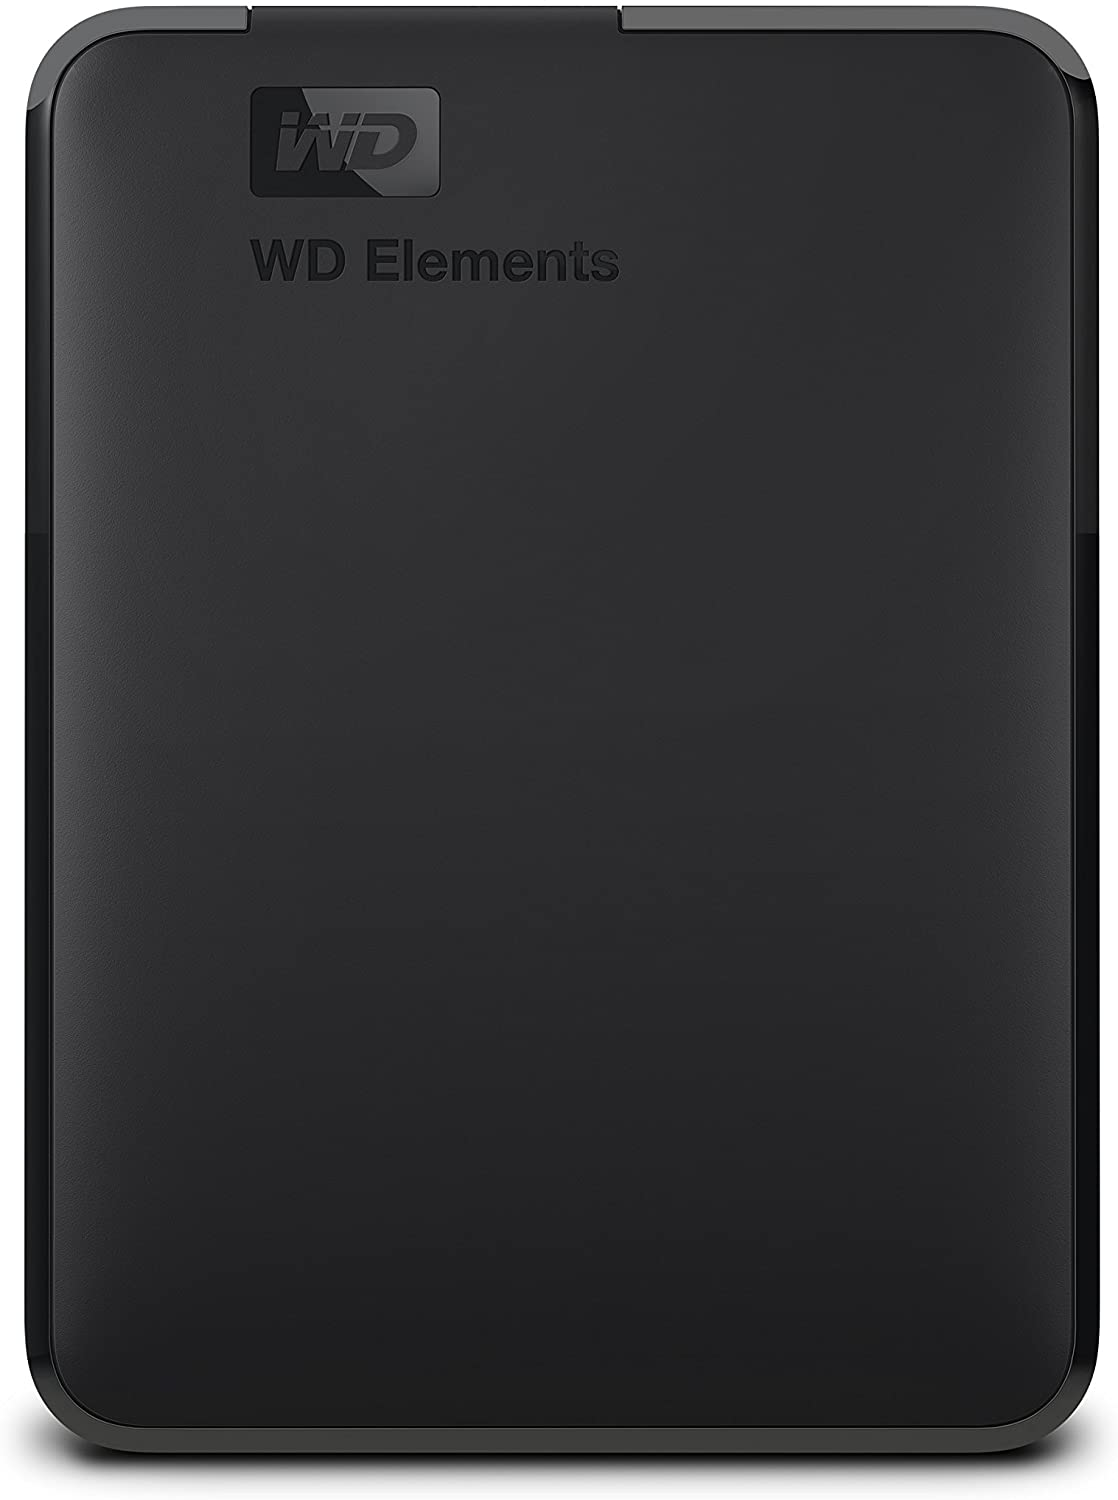 WD Elements 5TB Festplatte amazon